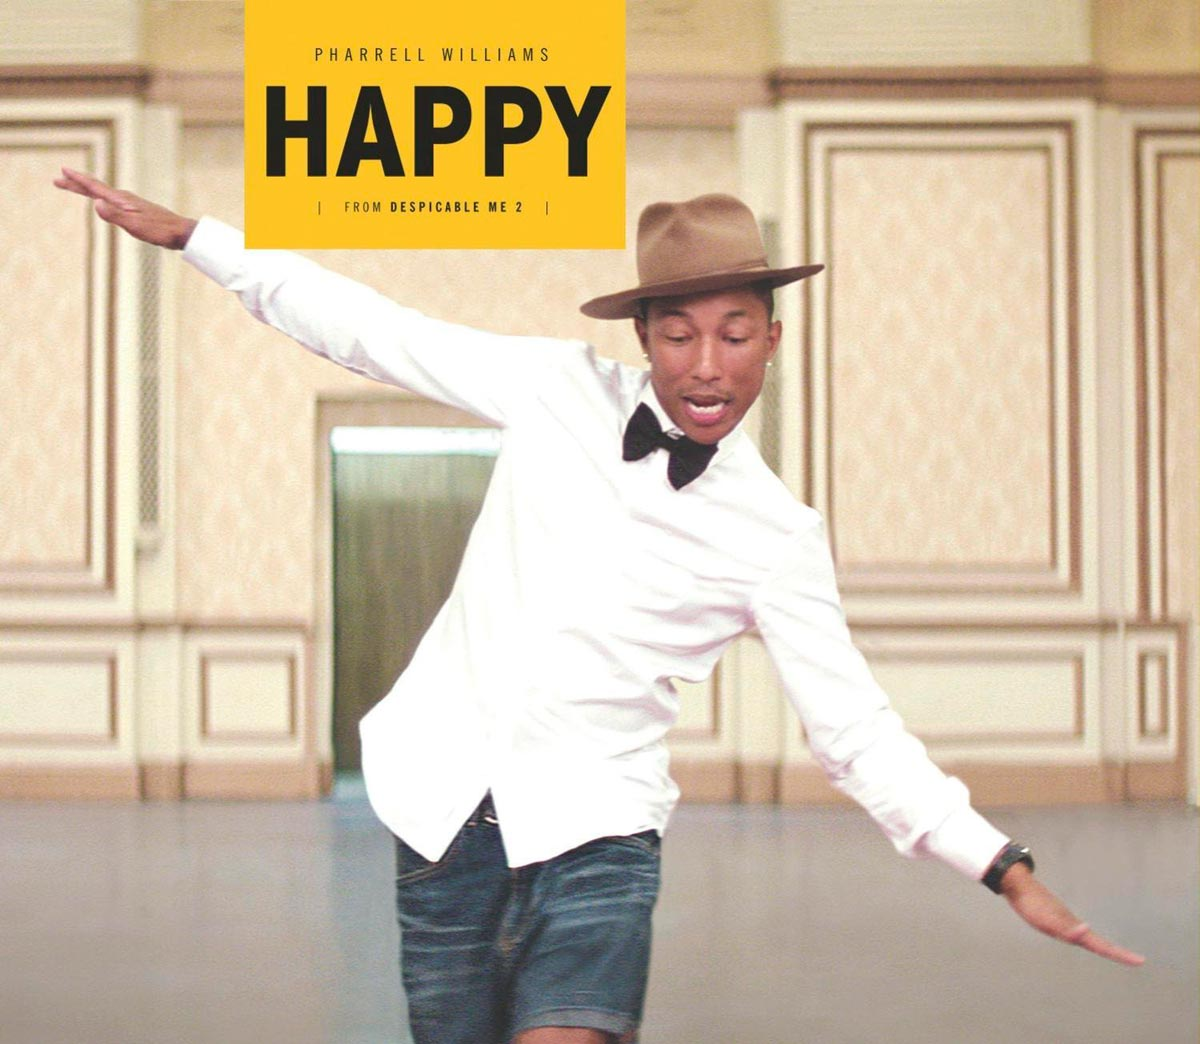 Pharrell Williams: Happy - la portada de la canción